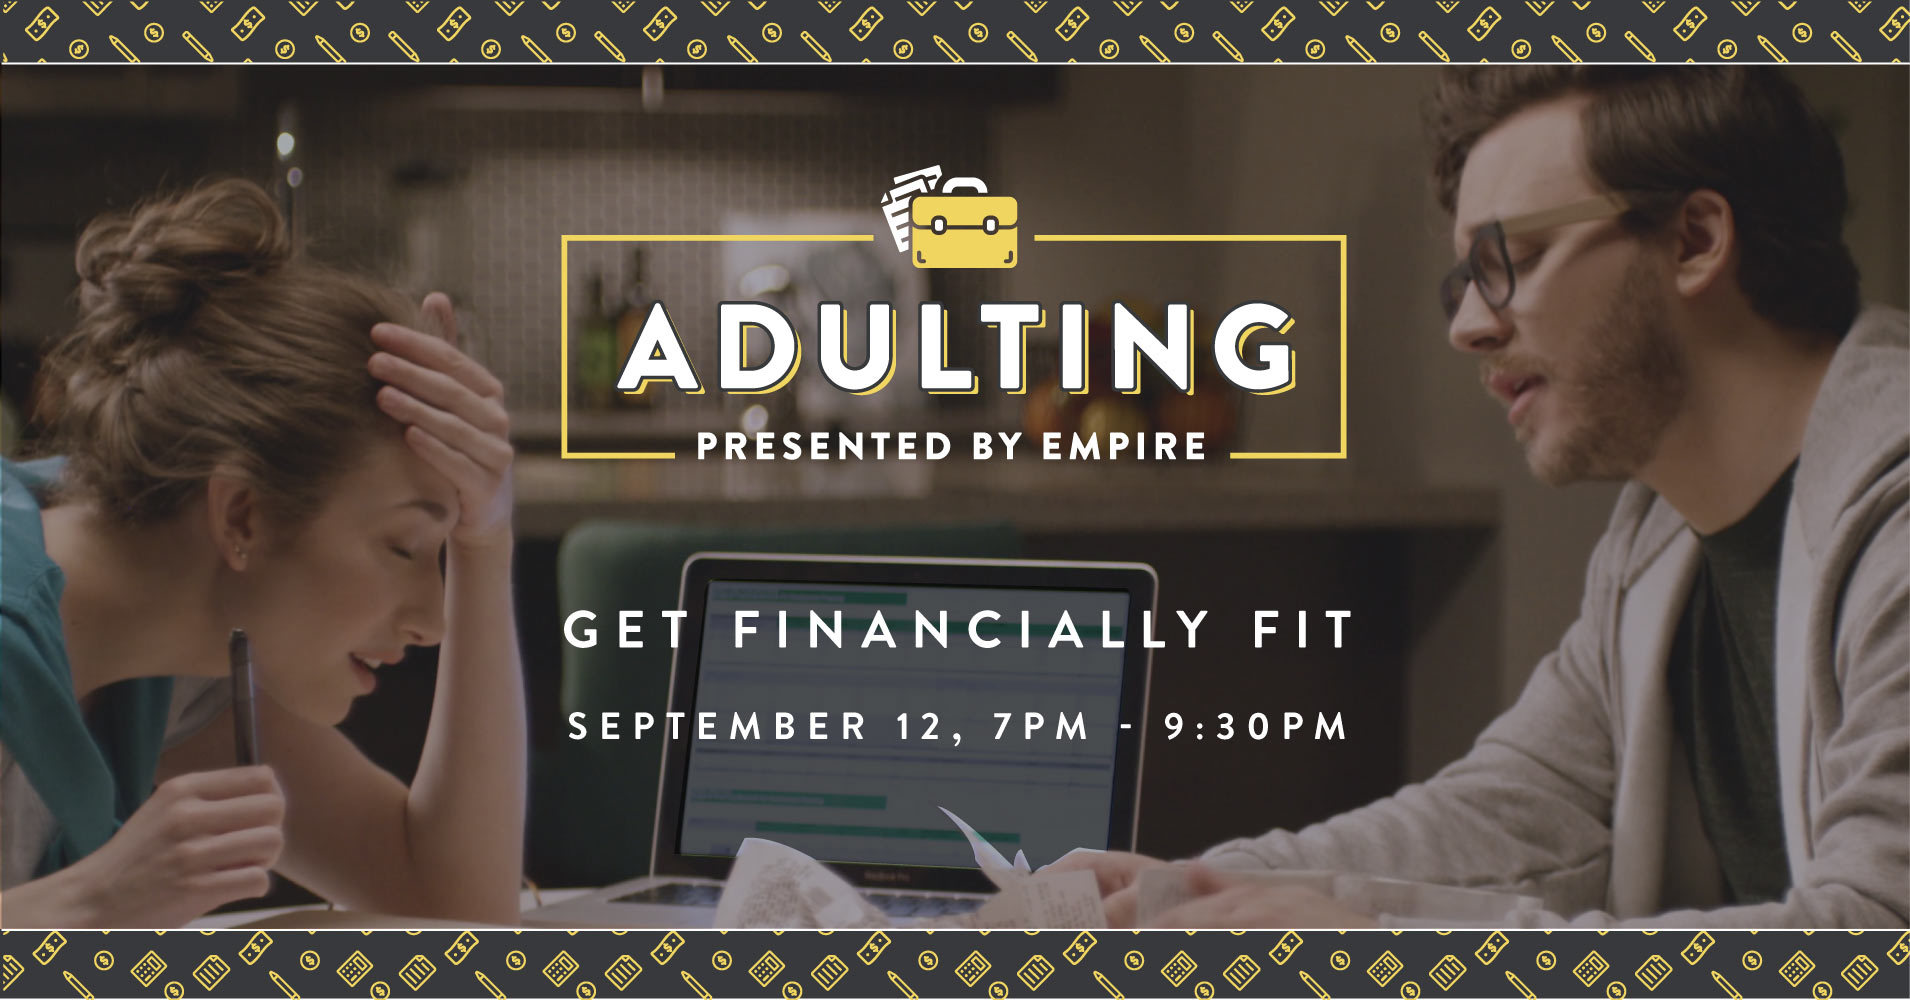 Empire_Adulting_Finance1